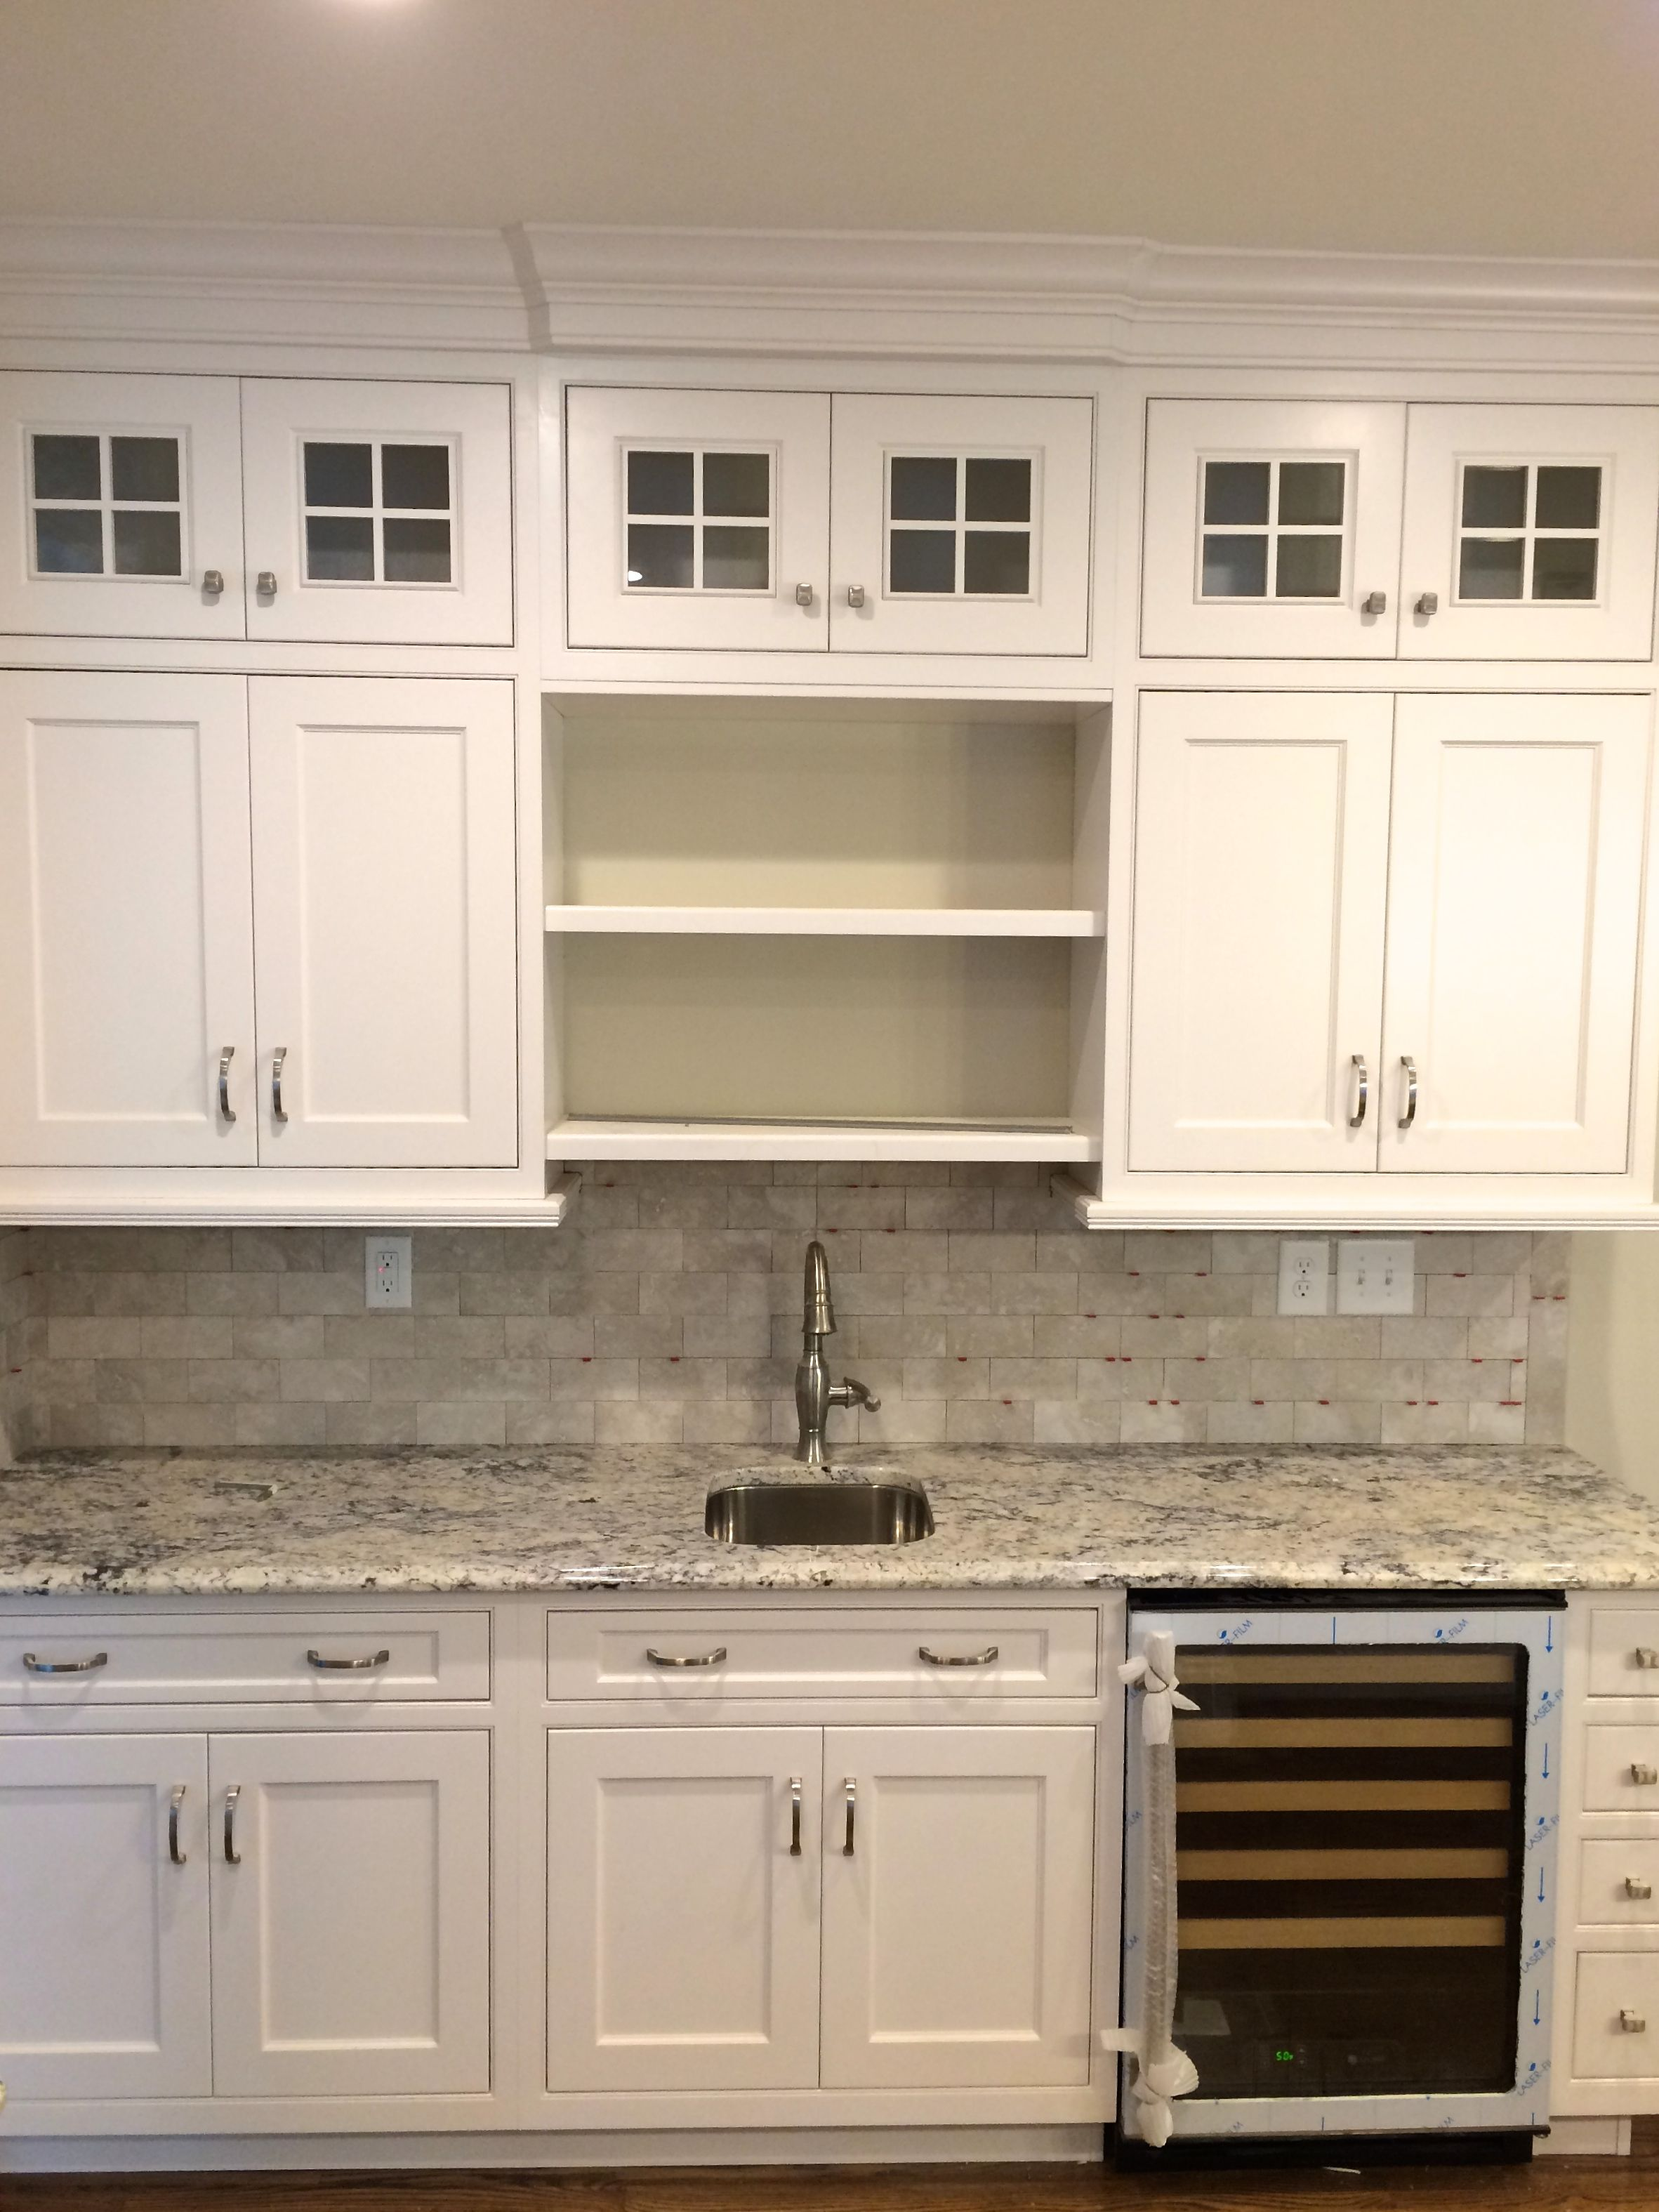 "Ice White"" Granite countertops with Dynasty Maple Pearl Cabinetry"